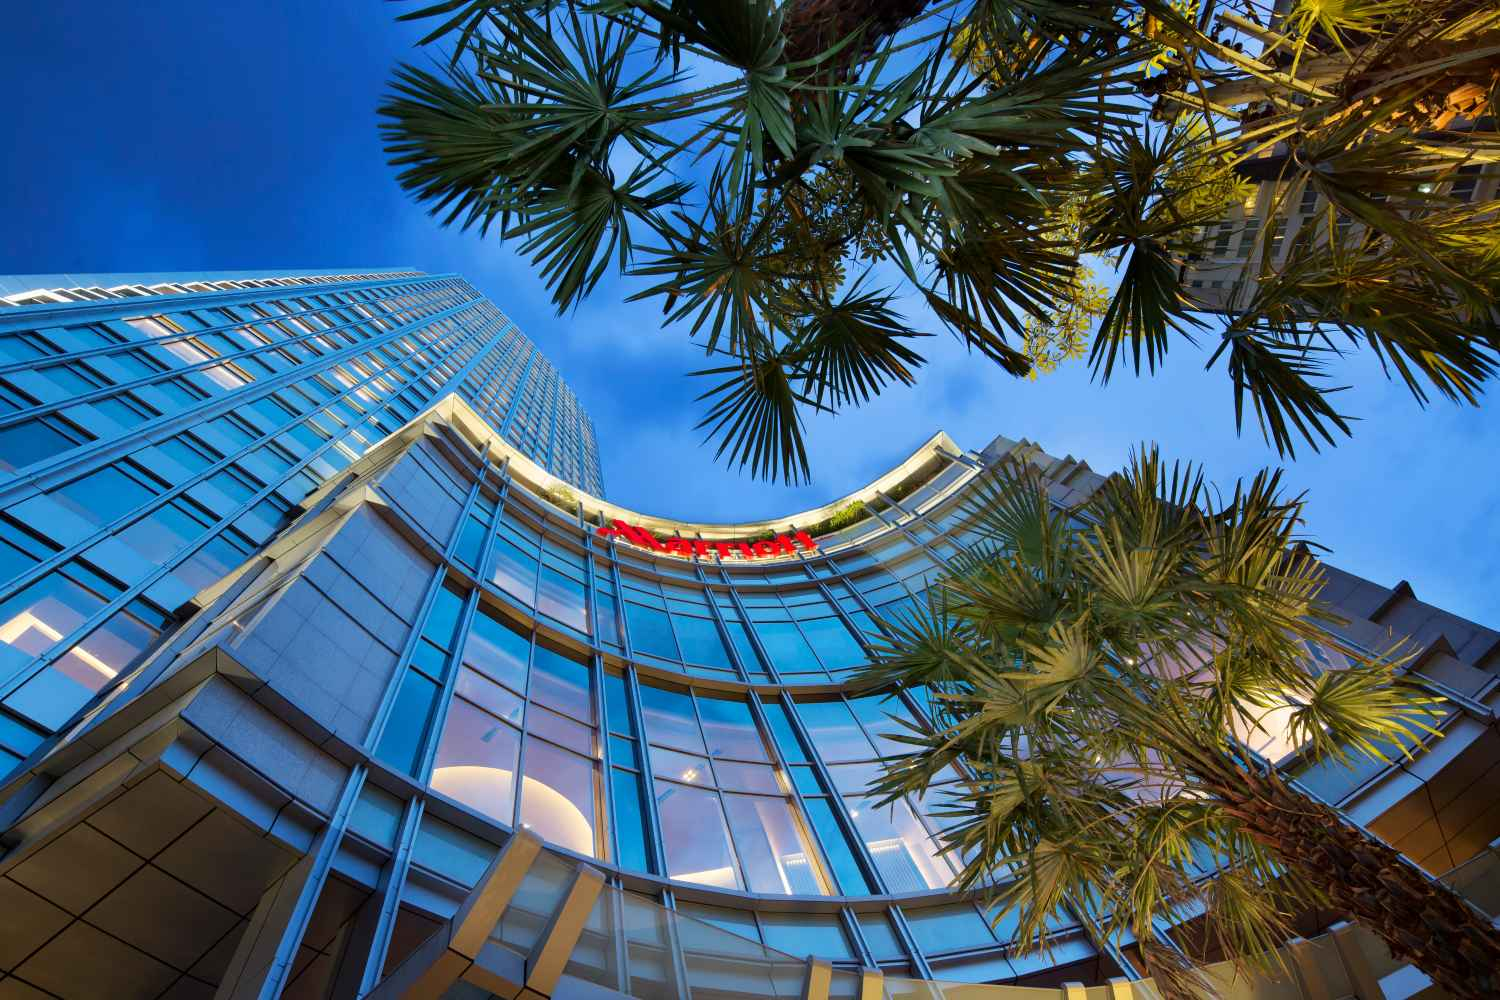 The Bangkok Marriott Hotel Sukhumvit where the Octave Rooftop Lounge & Bar is located on the top three floors.